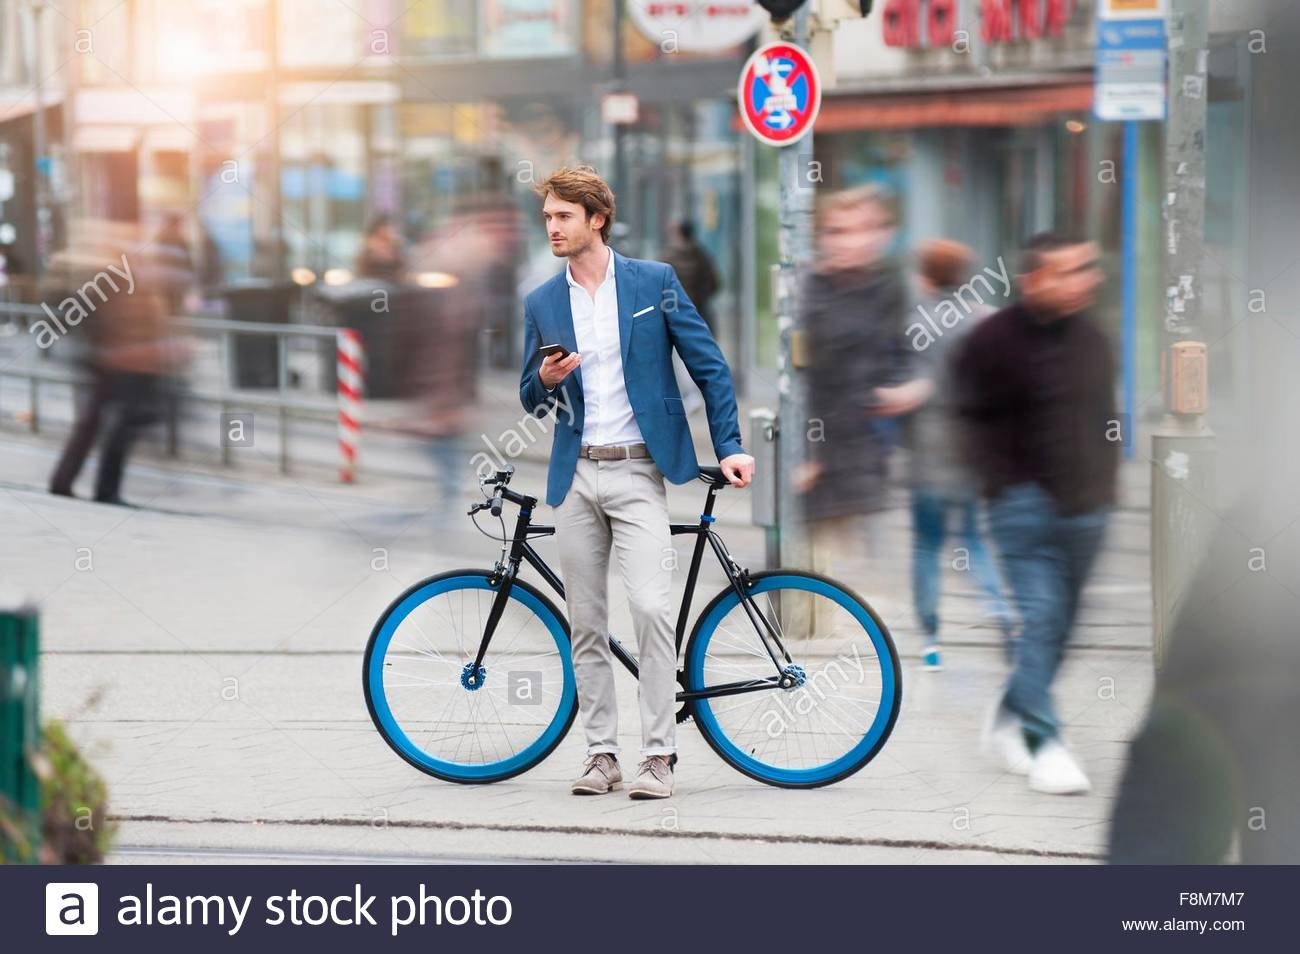 Differential focus of young man with bicycle in busy street holding mobile phone looking away - Stock Image